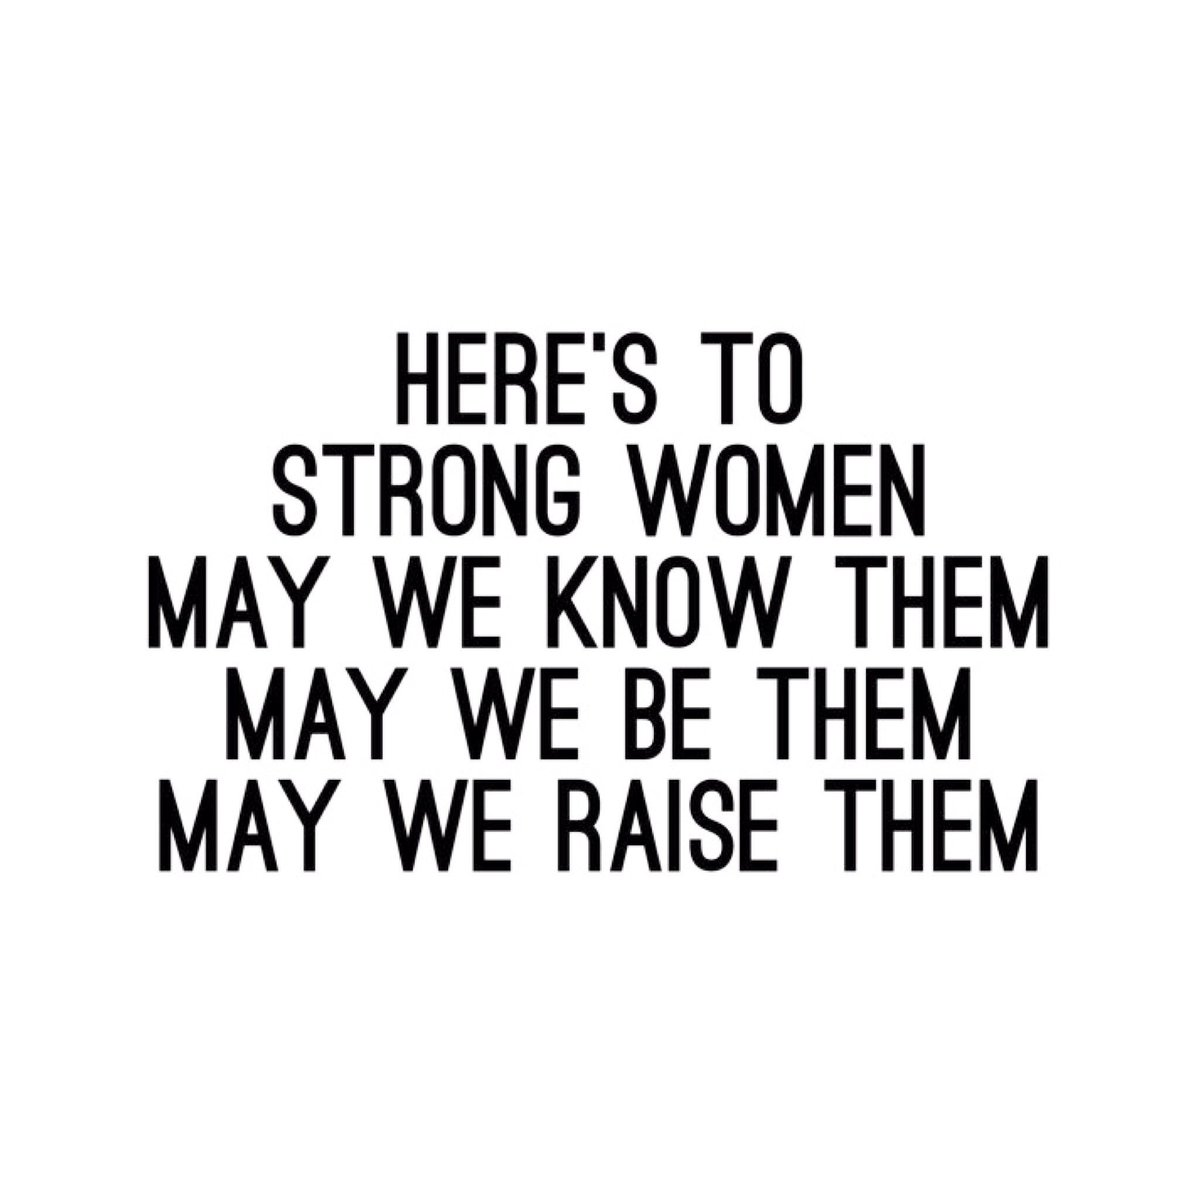 Happy #internationalwomensday beauties!  Here's to all you amazing #strongwomen  #30plusblogs #inspirationalquotes #thirtyplusblogger #blog<br>http://pic.twitter.com/I1mnKu1Pjq